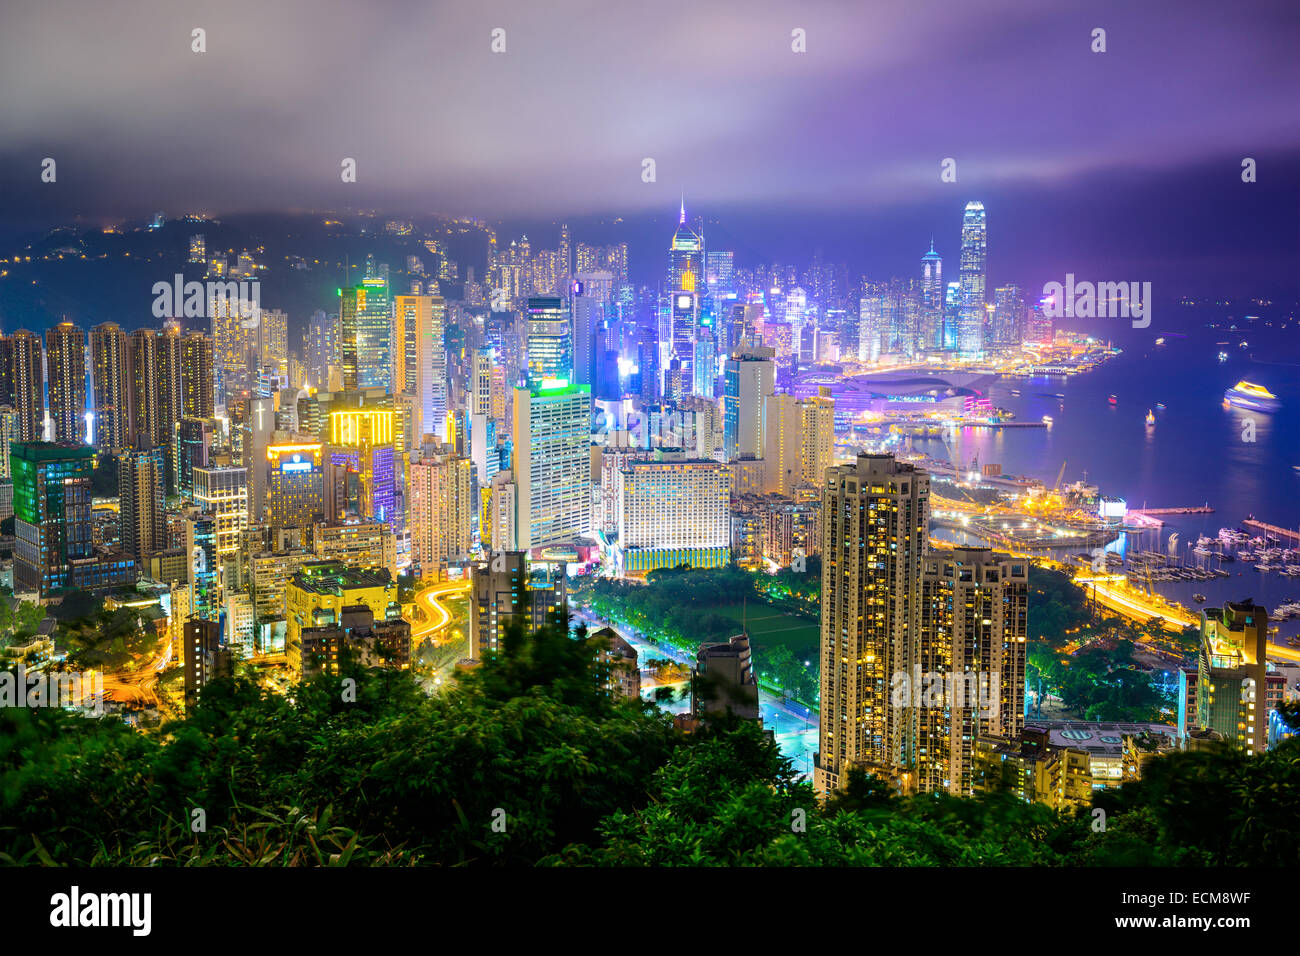 Hong Kong, China city skyline at night. - Stock Image